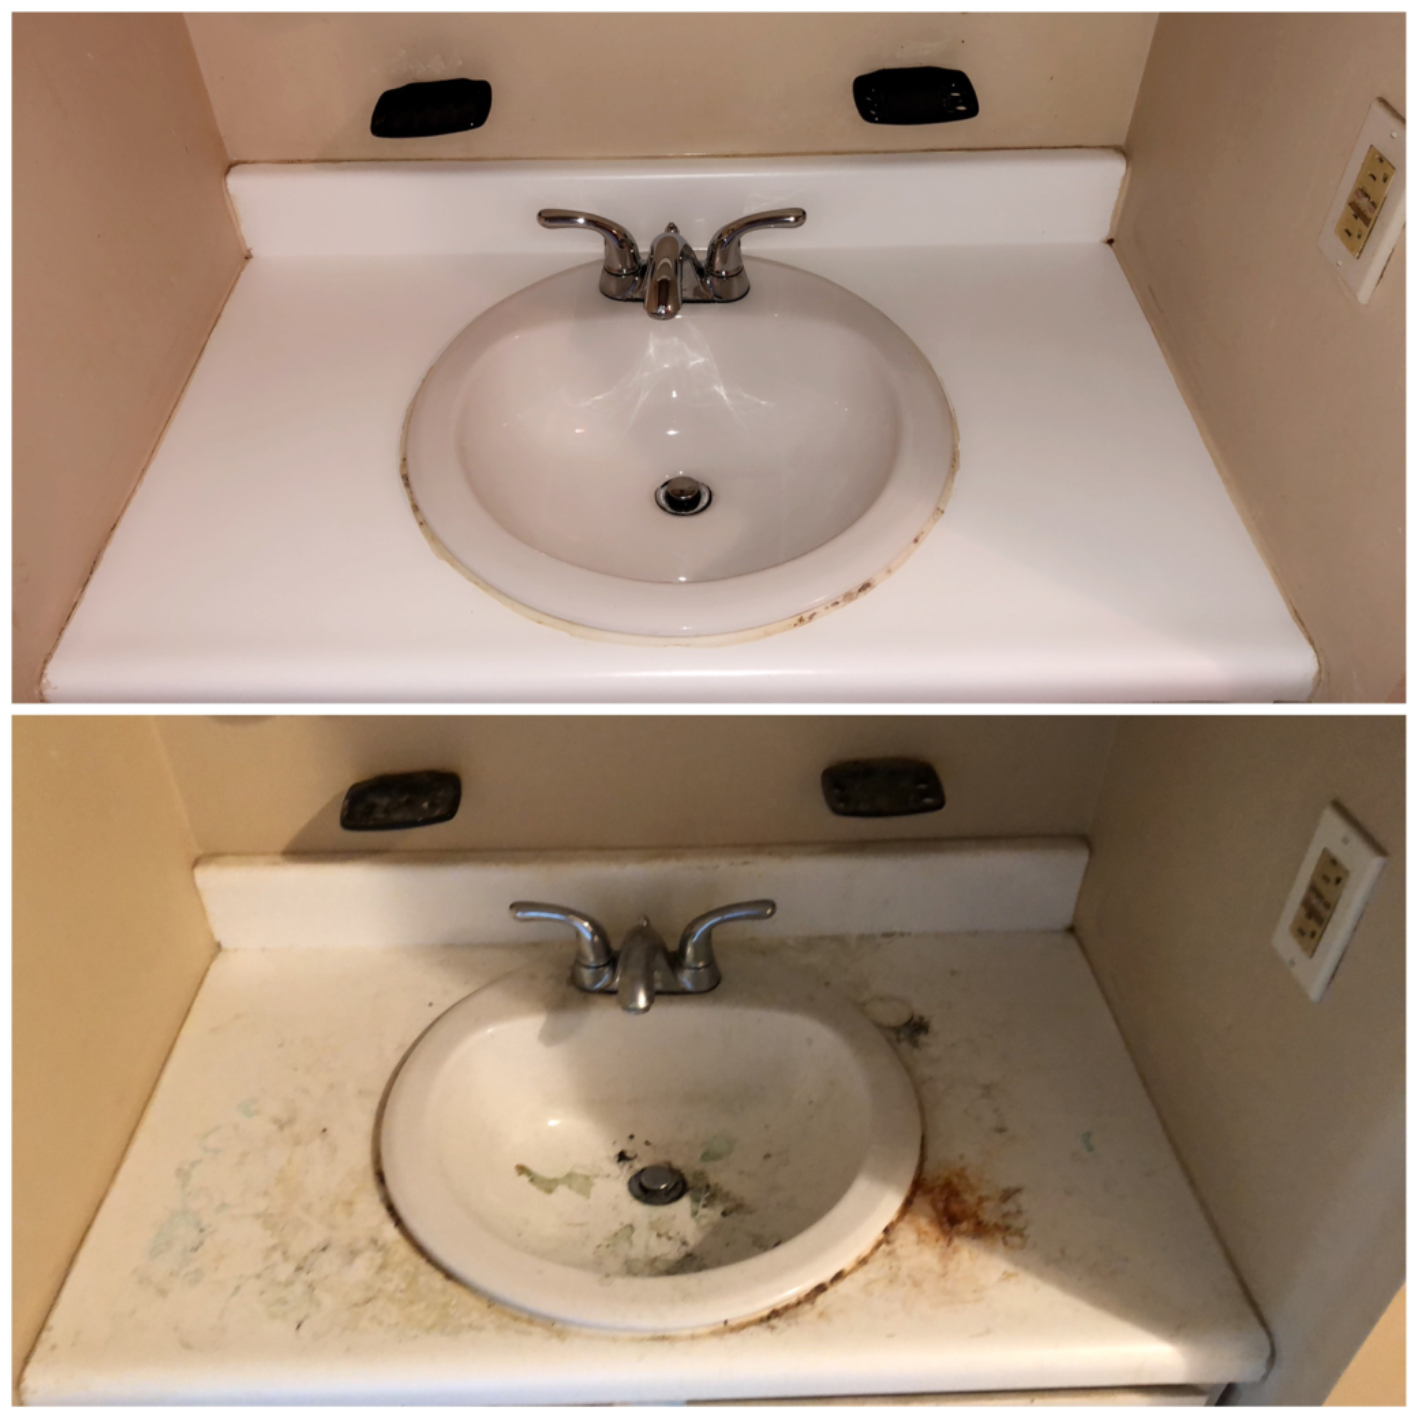 before and after sink 2.1.18